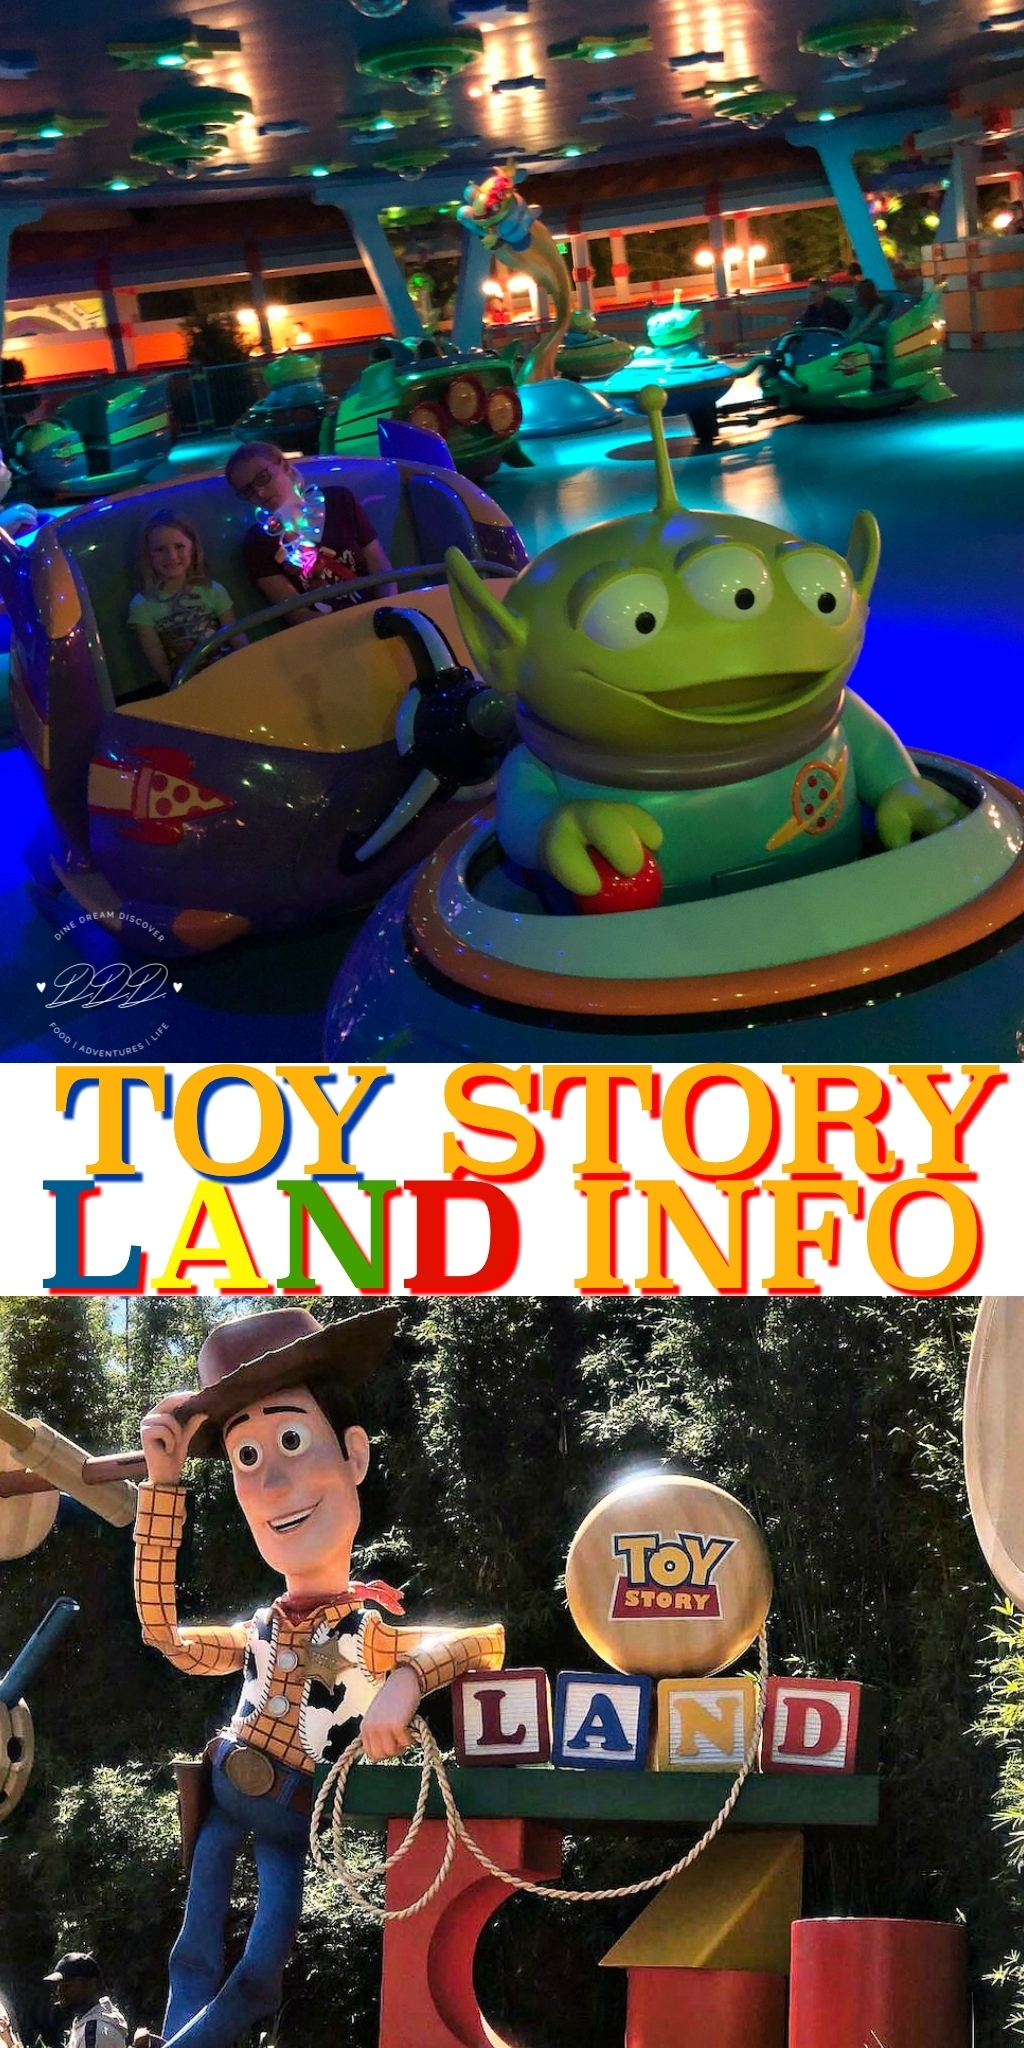 One of Disney's latest additions to their Hollywood Studios park in Disney World is none other than Toy Story Land and we're going to tell you all about it.